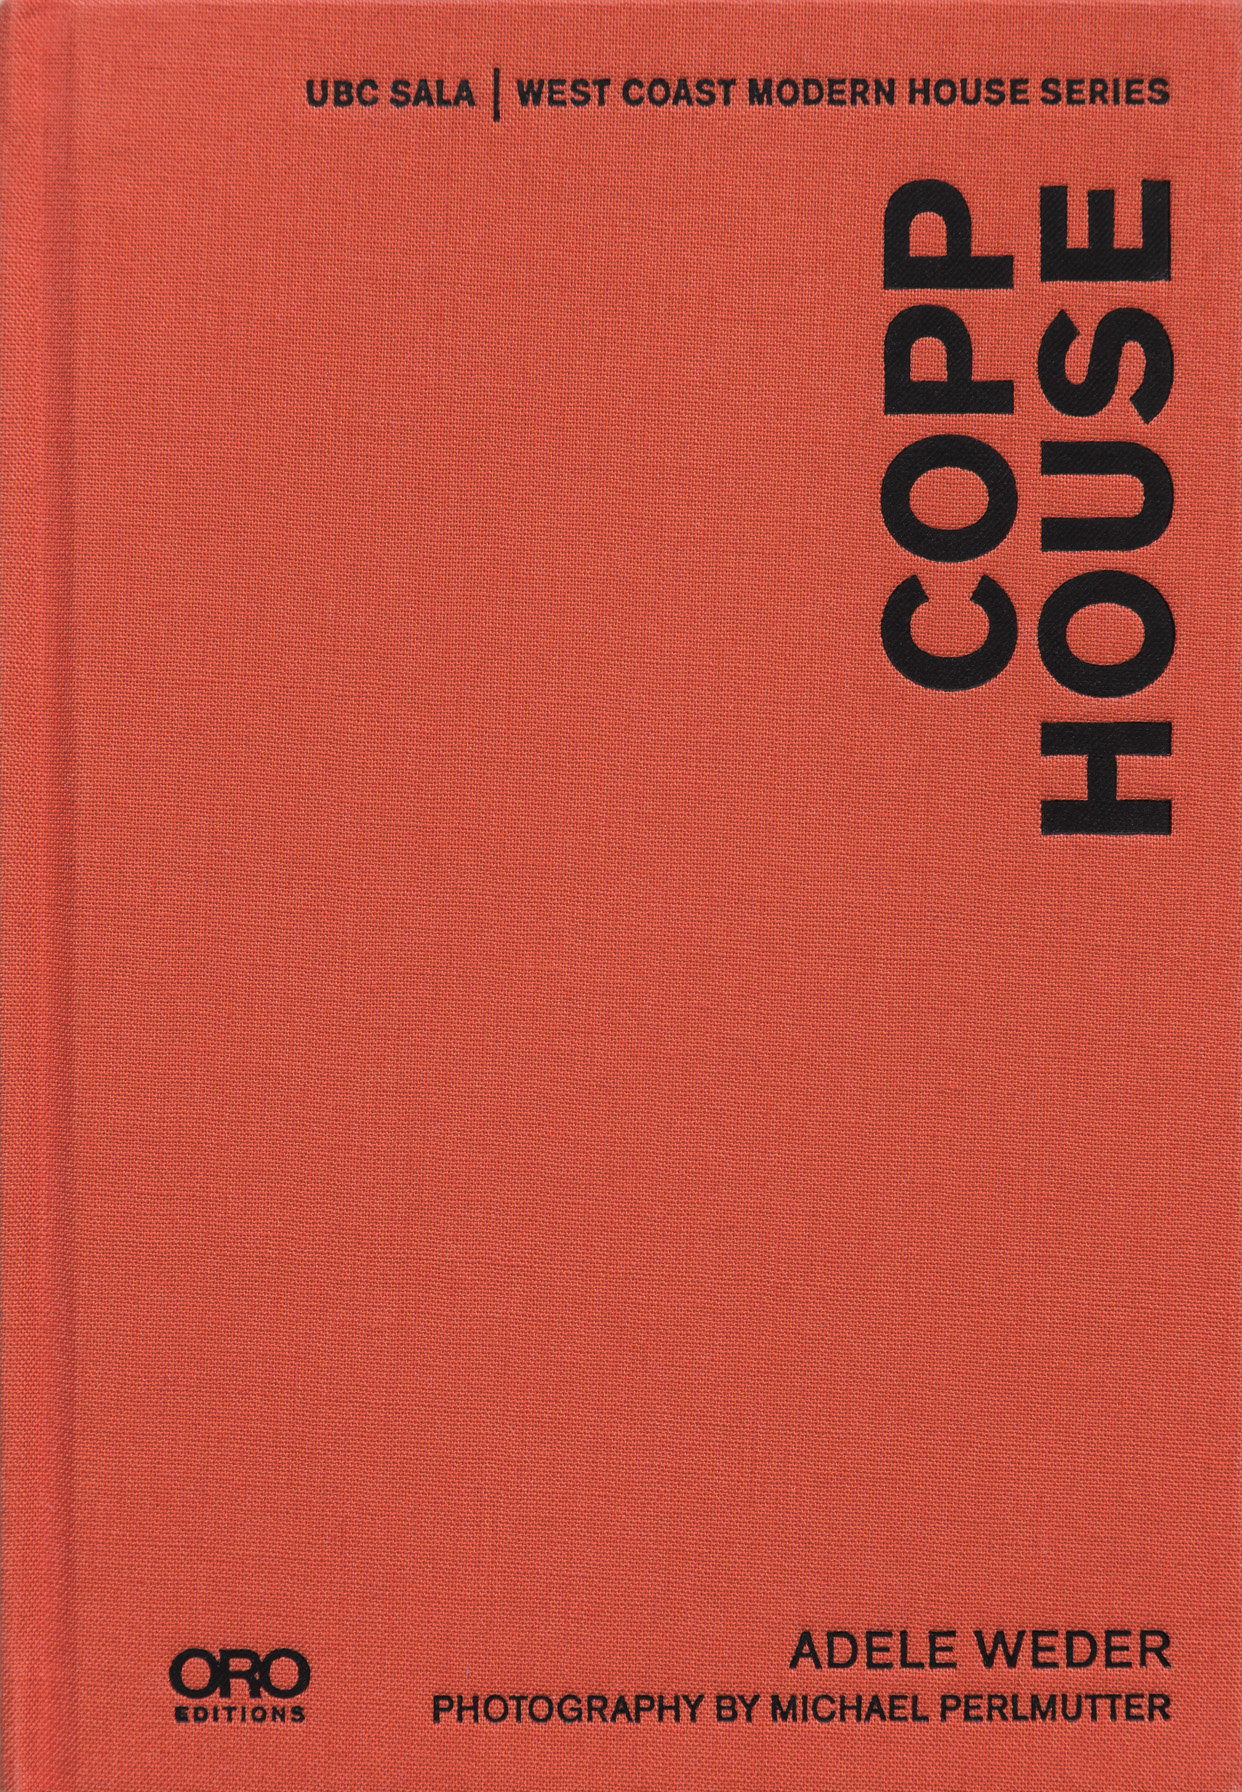 Copp House Front Cover.jpg